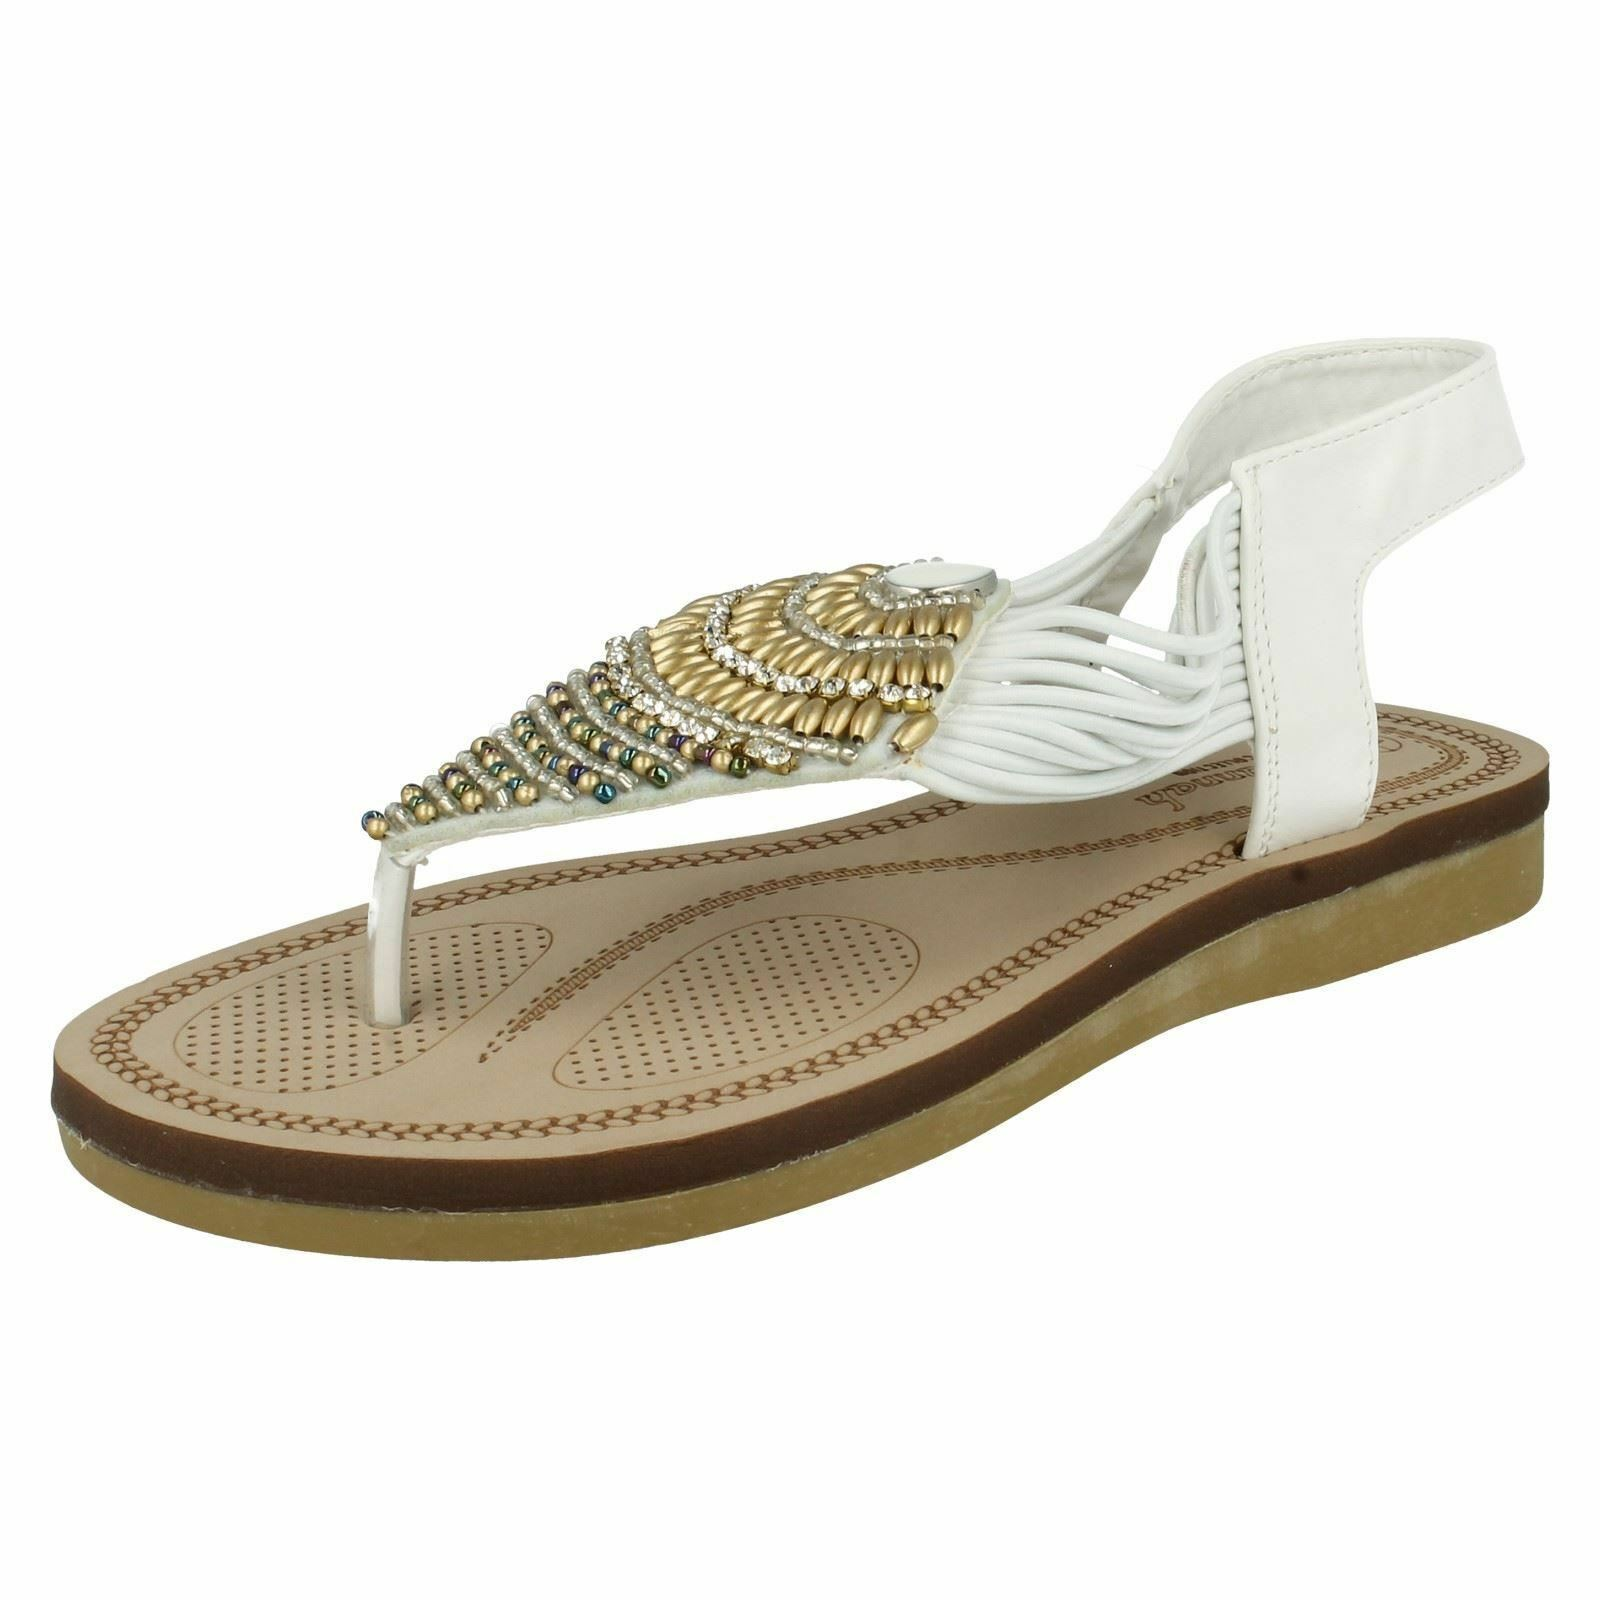 Savannah sandals F0989 Ladies White toe-post sandals Savannah X7  (R25B) 948cce